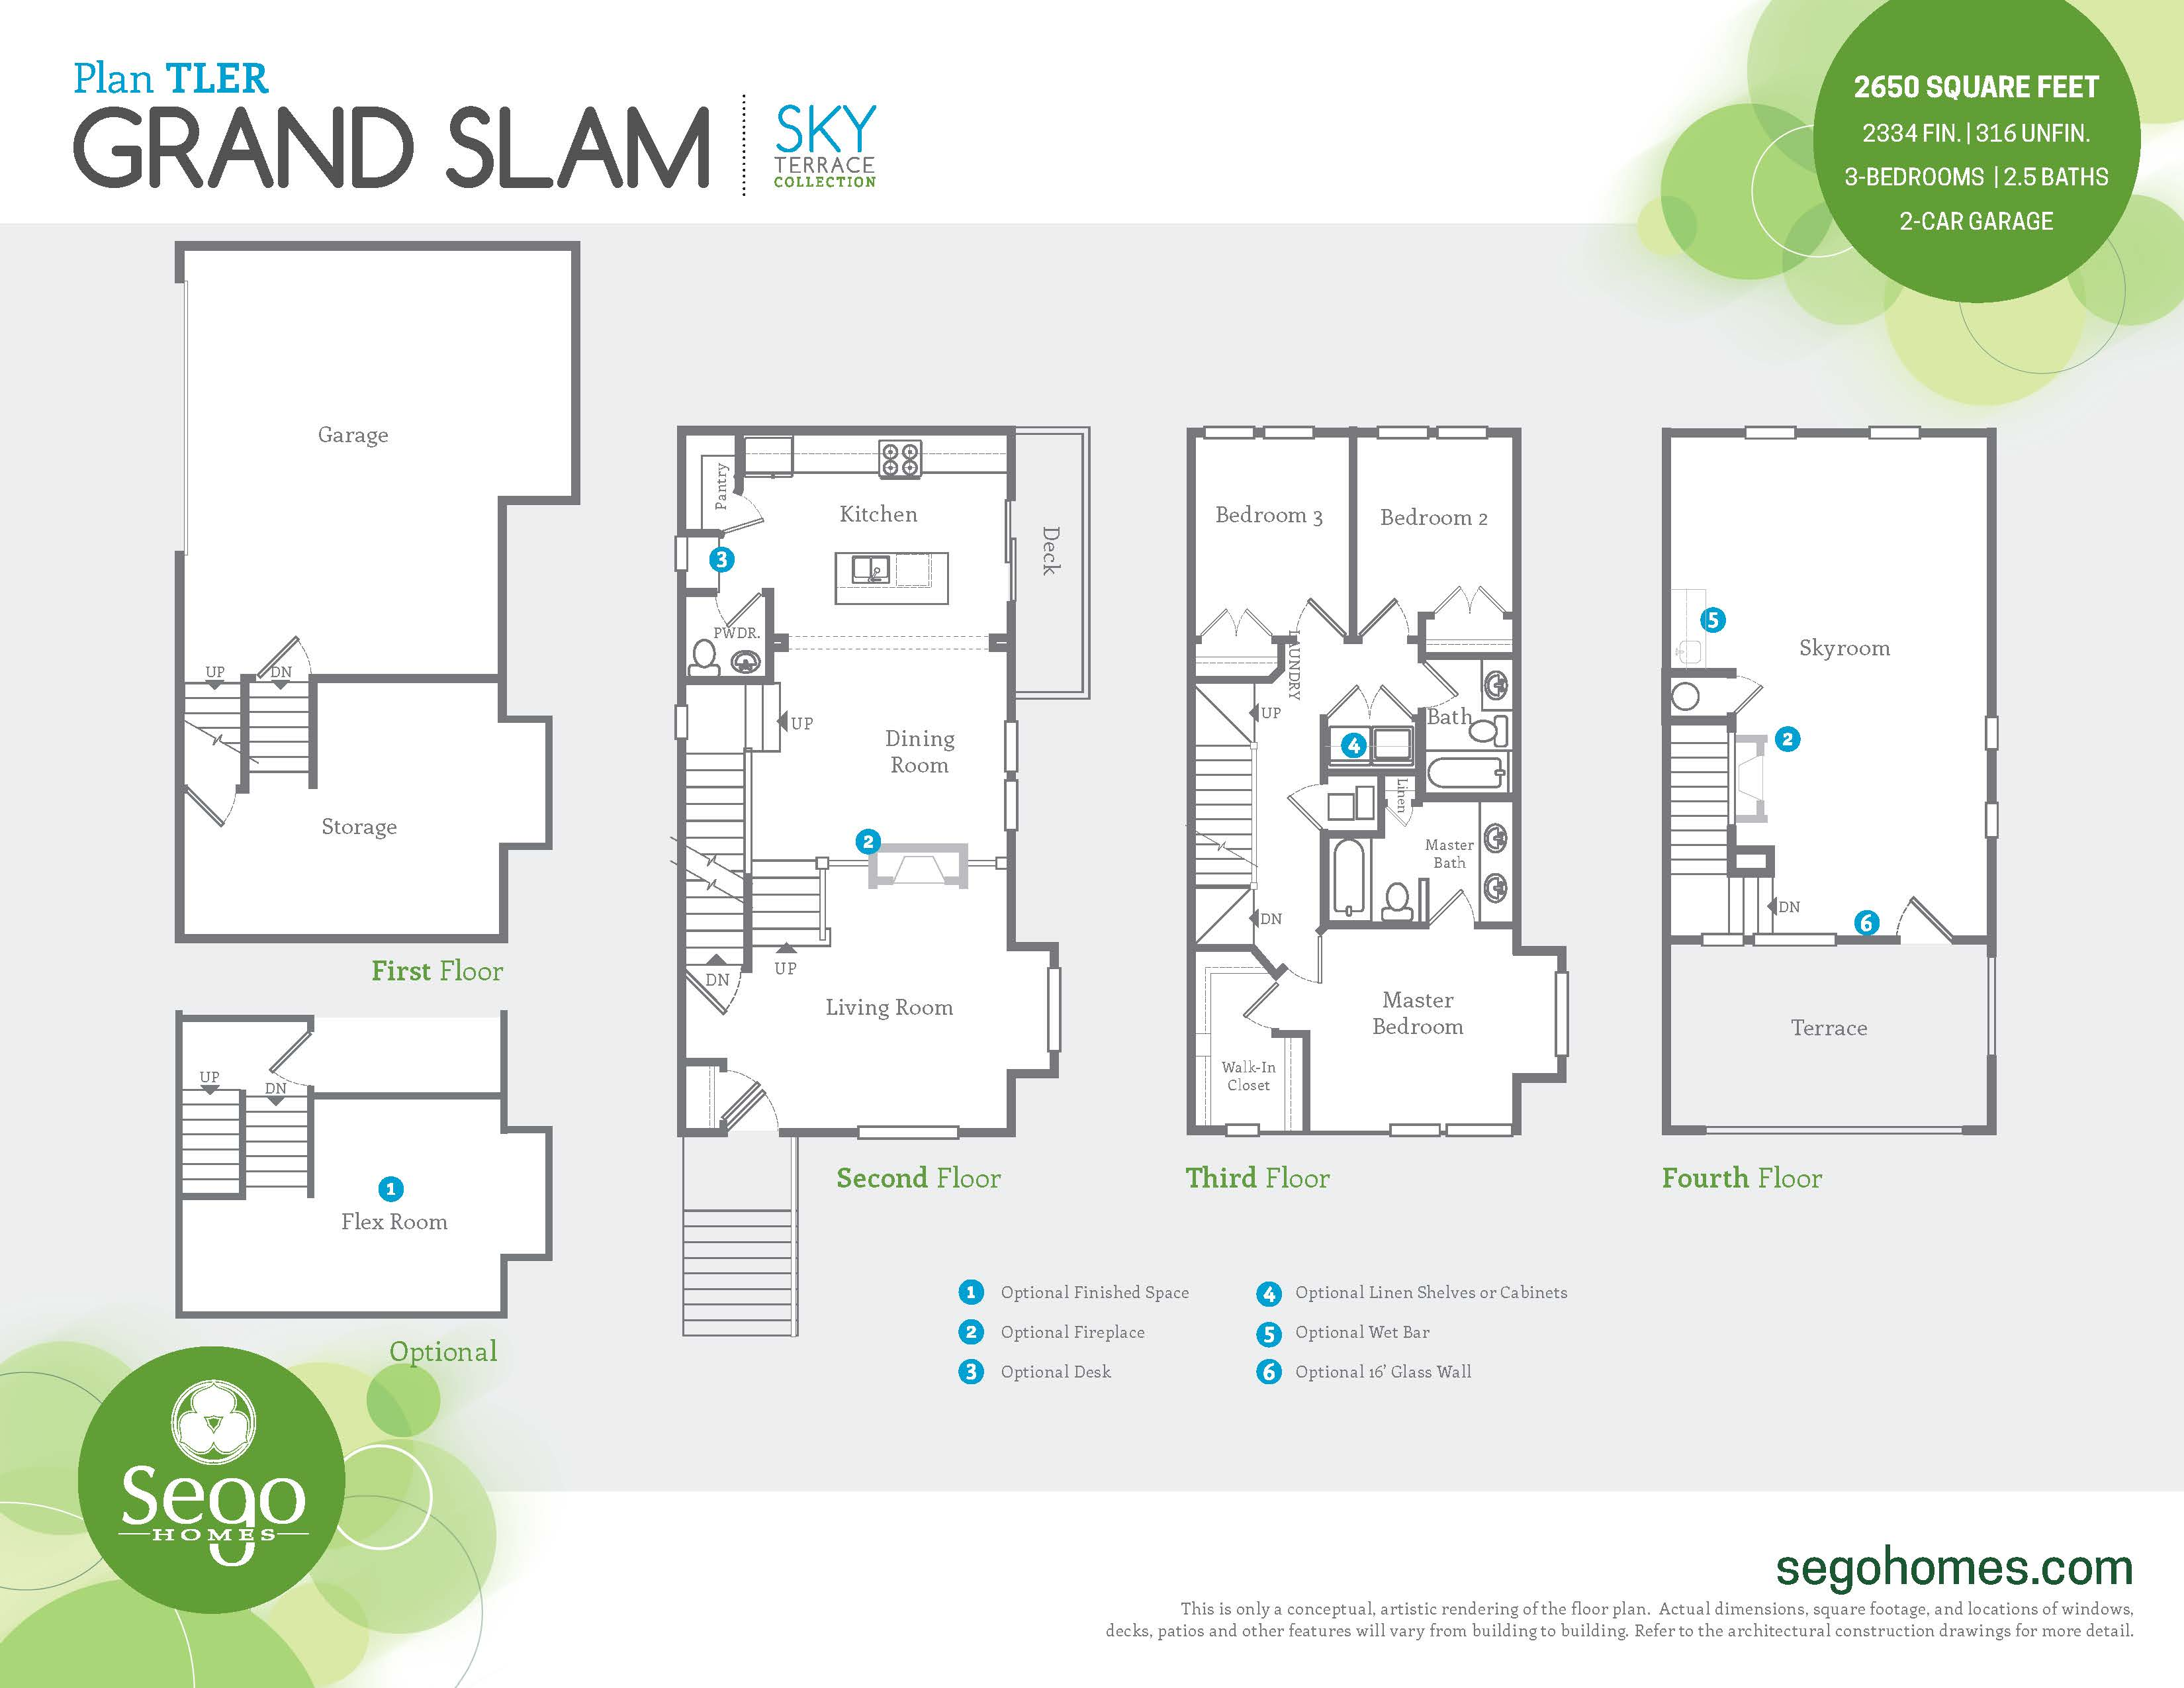 Floorplan handout of the Grand Slam with Roof Deck End